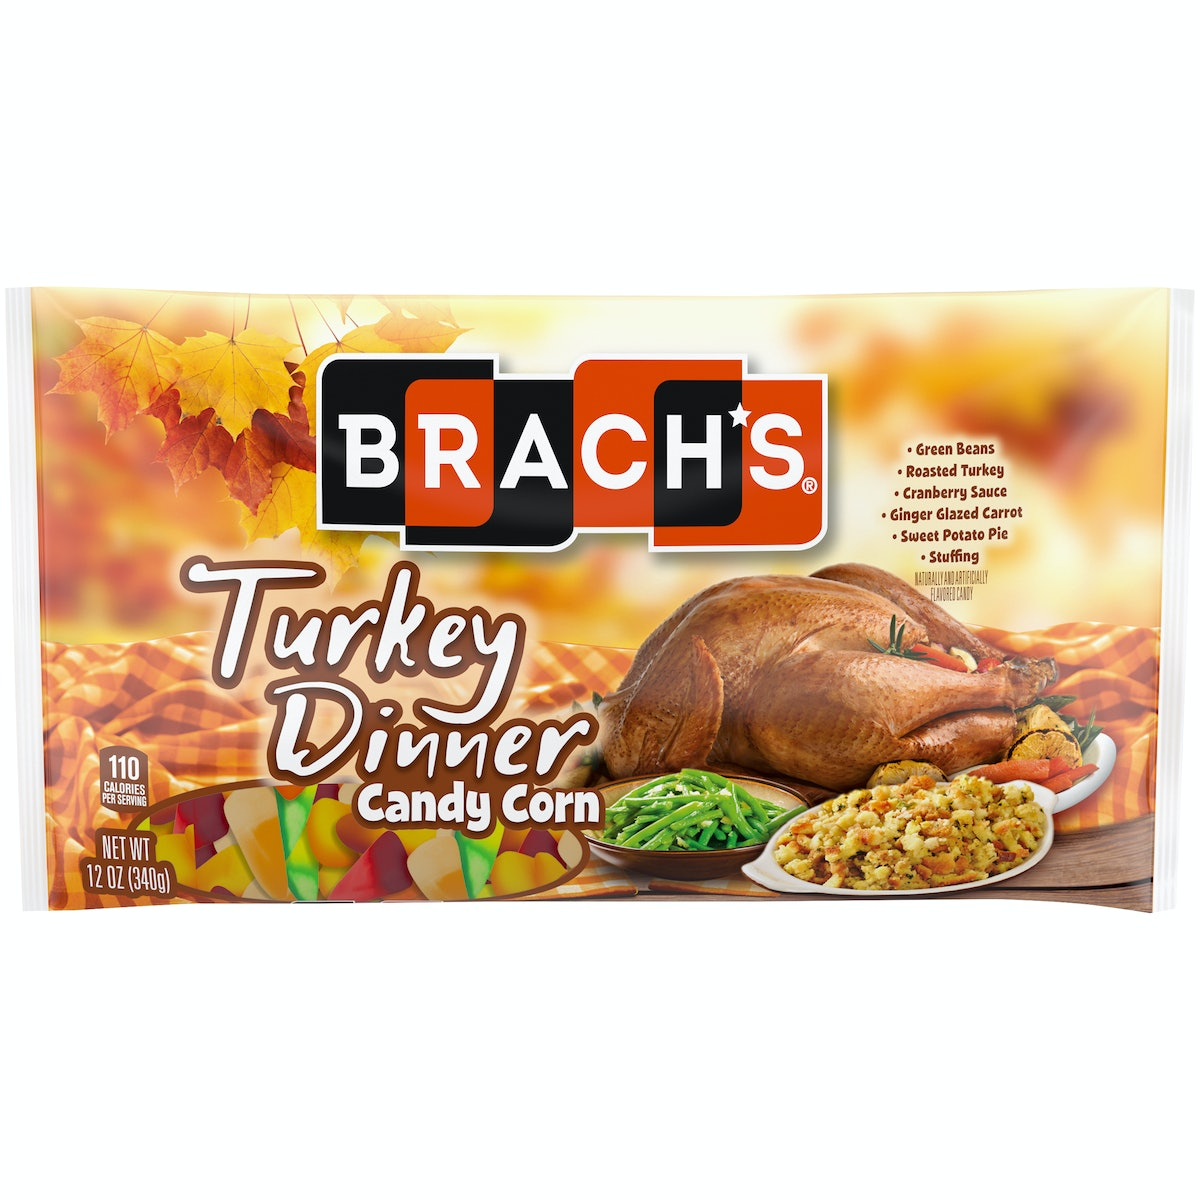 Brach's Turkey Dinner Candy Corn includes flavors like green beans and sweet potato pie.